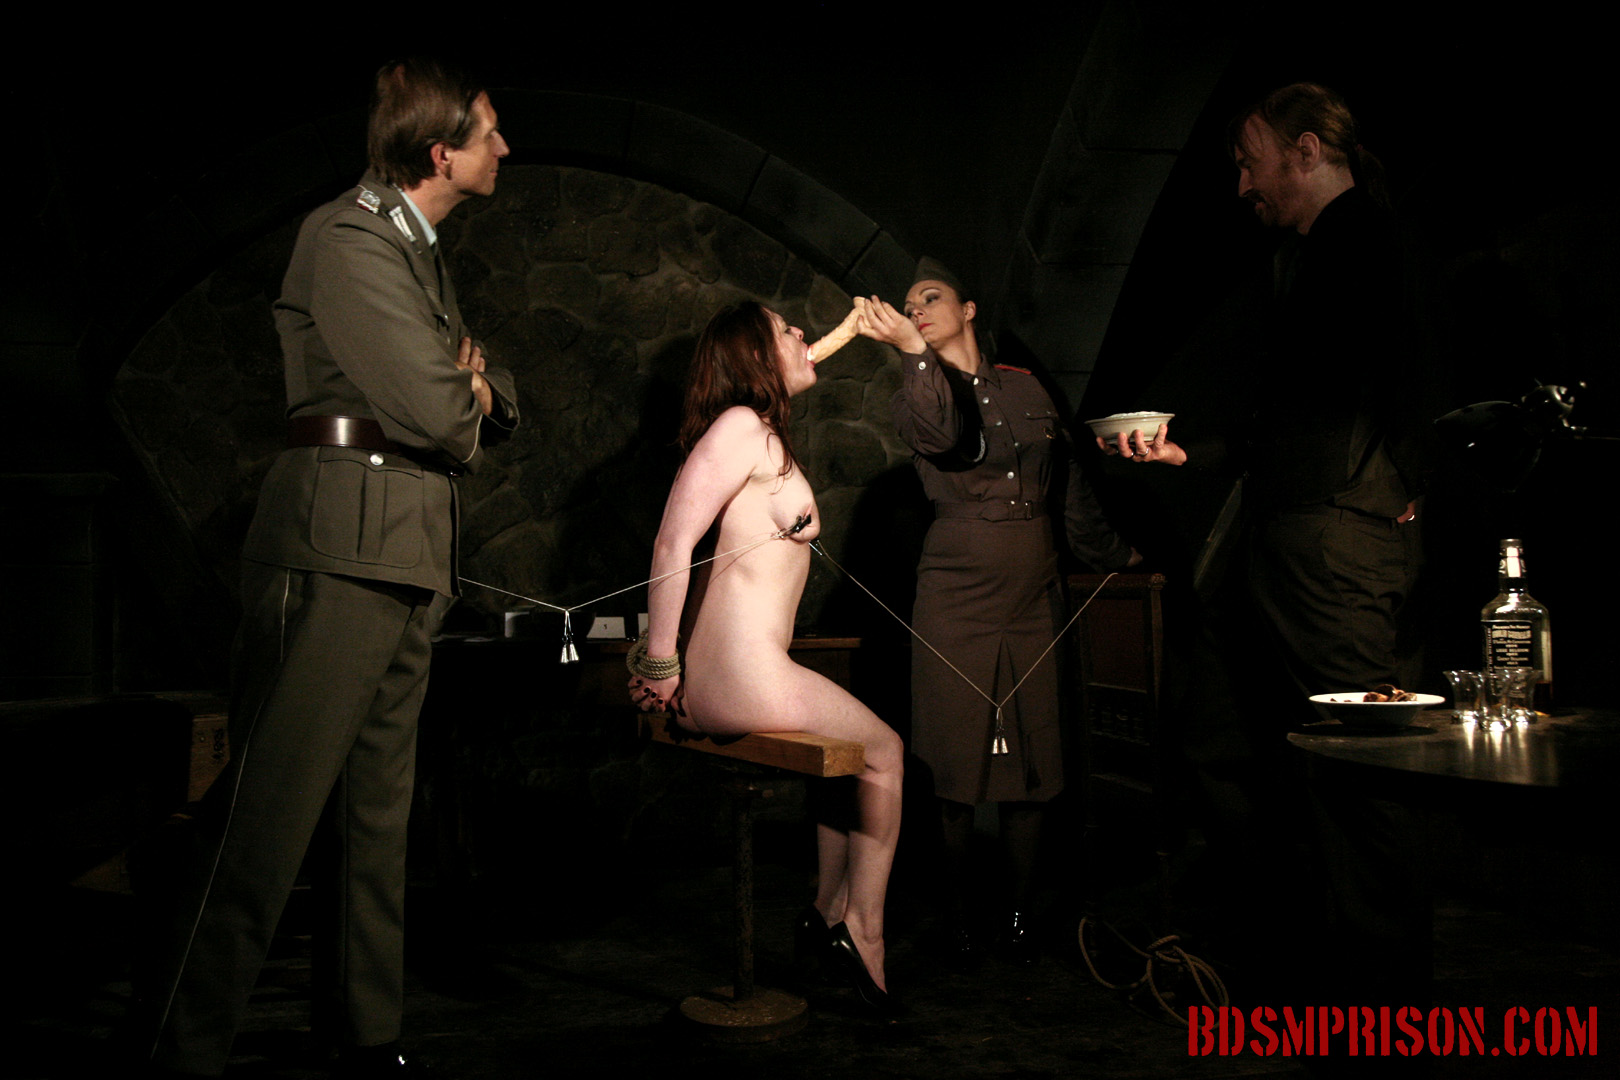 Sophie endures domination dildo deepthroat bj  sophie is punished daily by three prison guards  she s been sentenced to lifelong sex slave traininig  she wakes up bound to a chair nipple weights hanging low to the floor  sophie will endure three bdsm mast. Sophie is punished daily by three prison guards. She's been sentenced to lifelong sex slave traininig. She wakes up bound to a chair, nipple weights hanging low to the floor. Sophie will endure three BDSM Masters, domination, bondage, breast, pussy and nipple tortured with clamps, intense spanking, whipping and smacking, humiliation, sex toys, dildo with a deepthroat BJ. They even have whip cream for her. This prison slut has earned a treat.